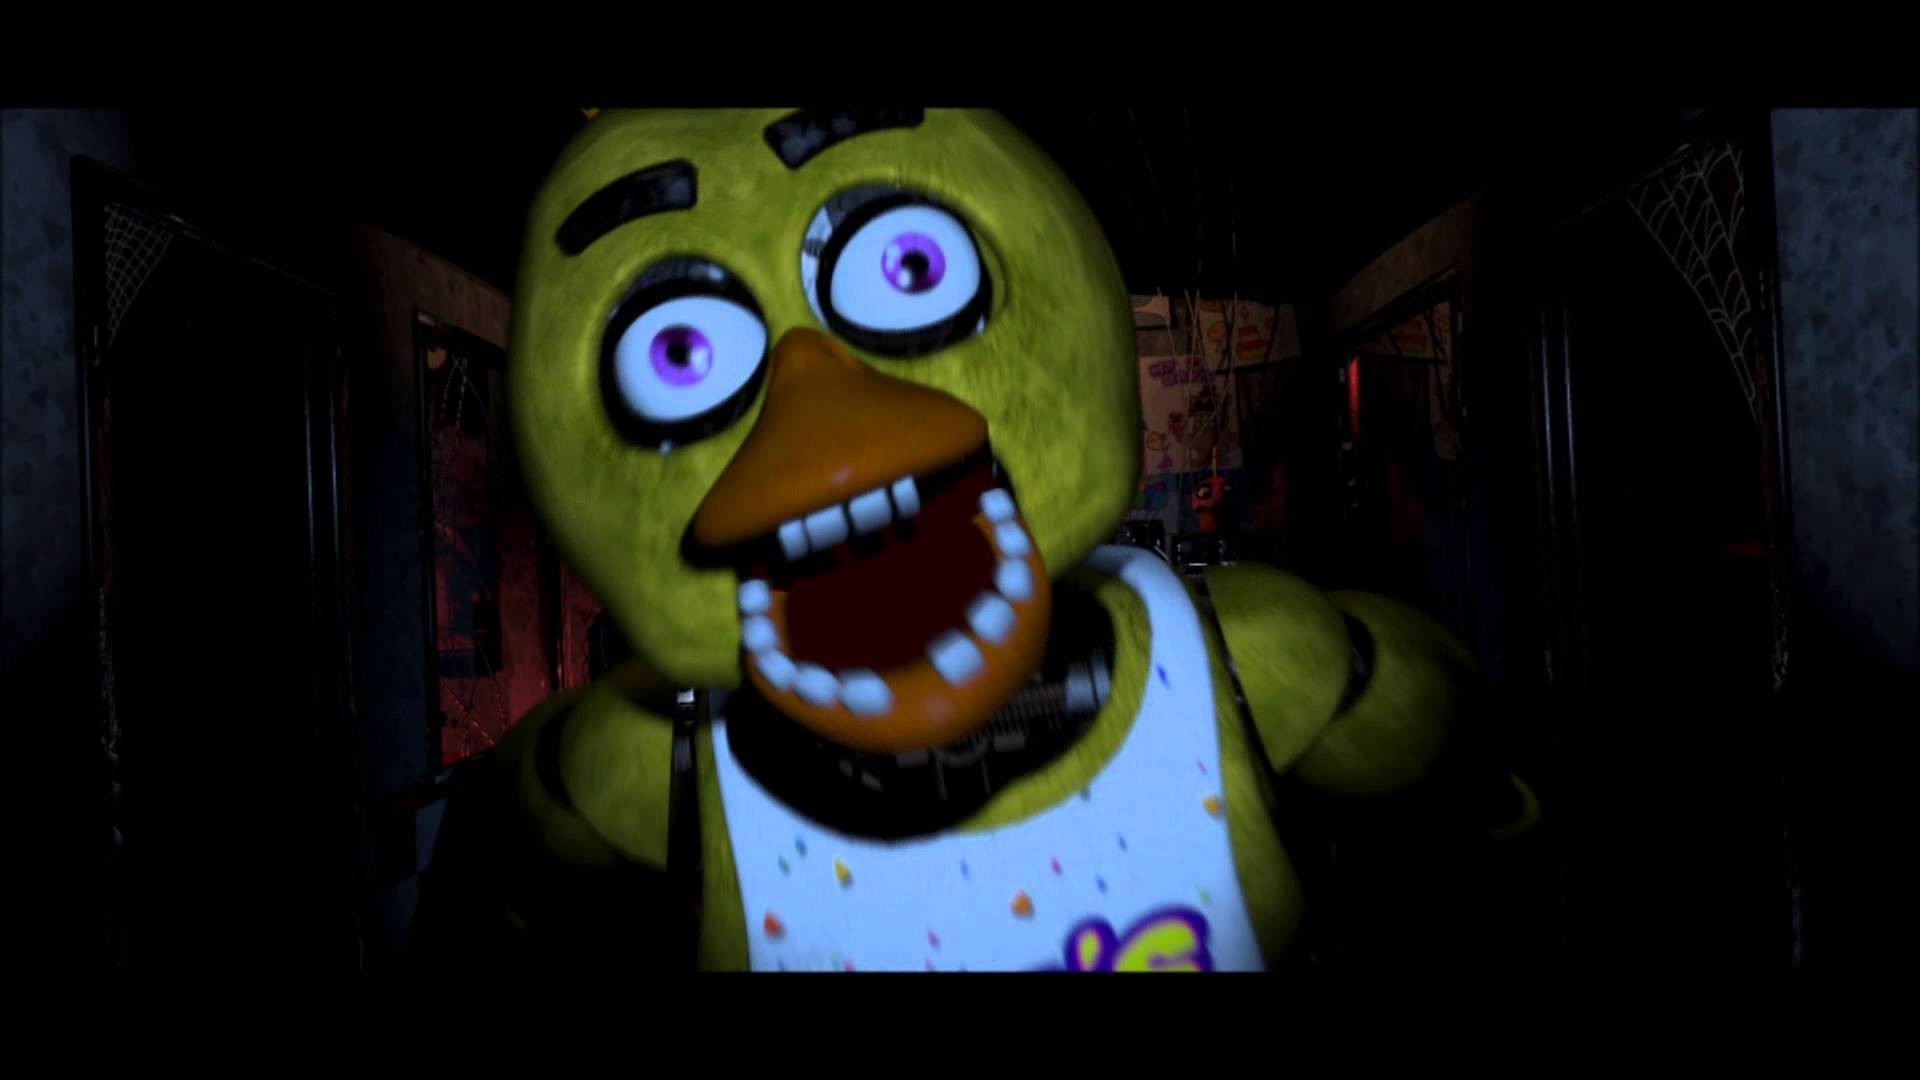 Res: 1920x1080, Five Nights at Freddy's Who is the girlfriend of the foxy?